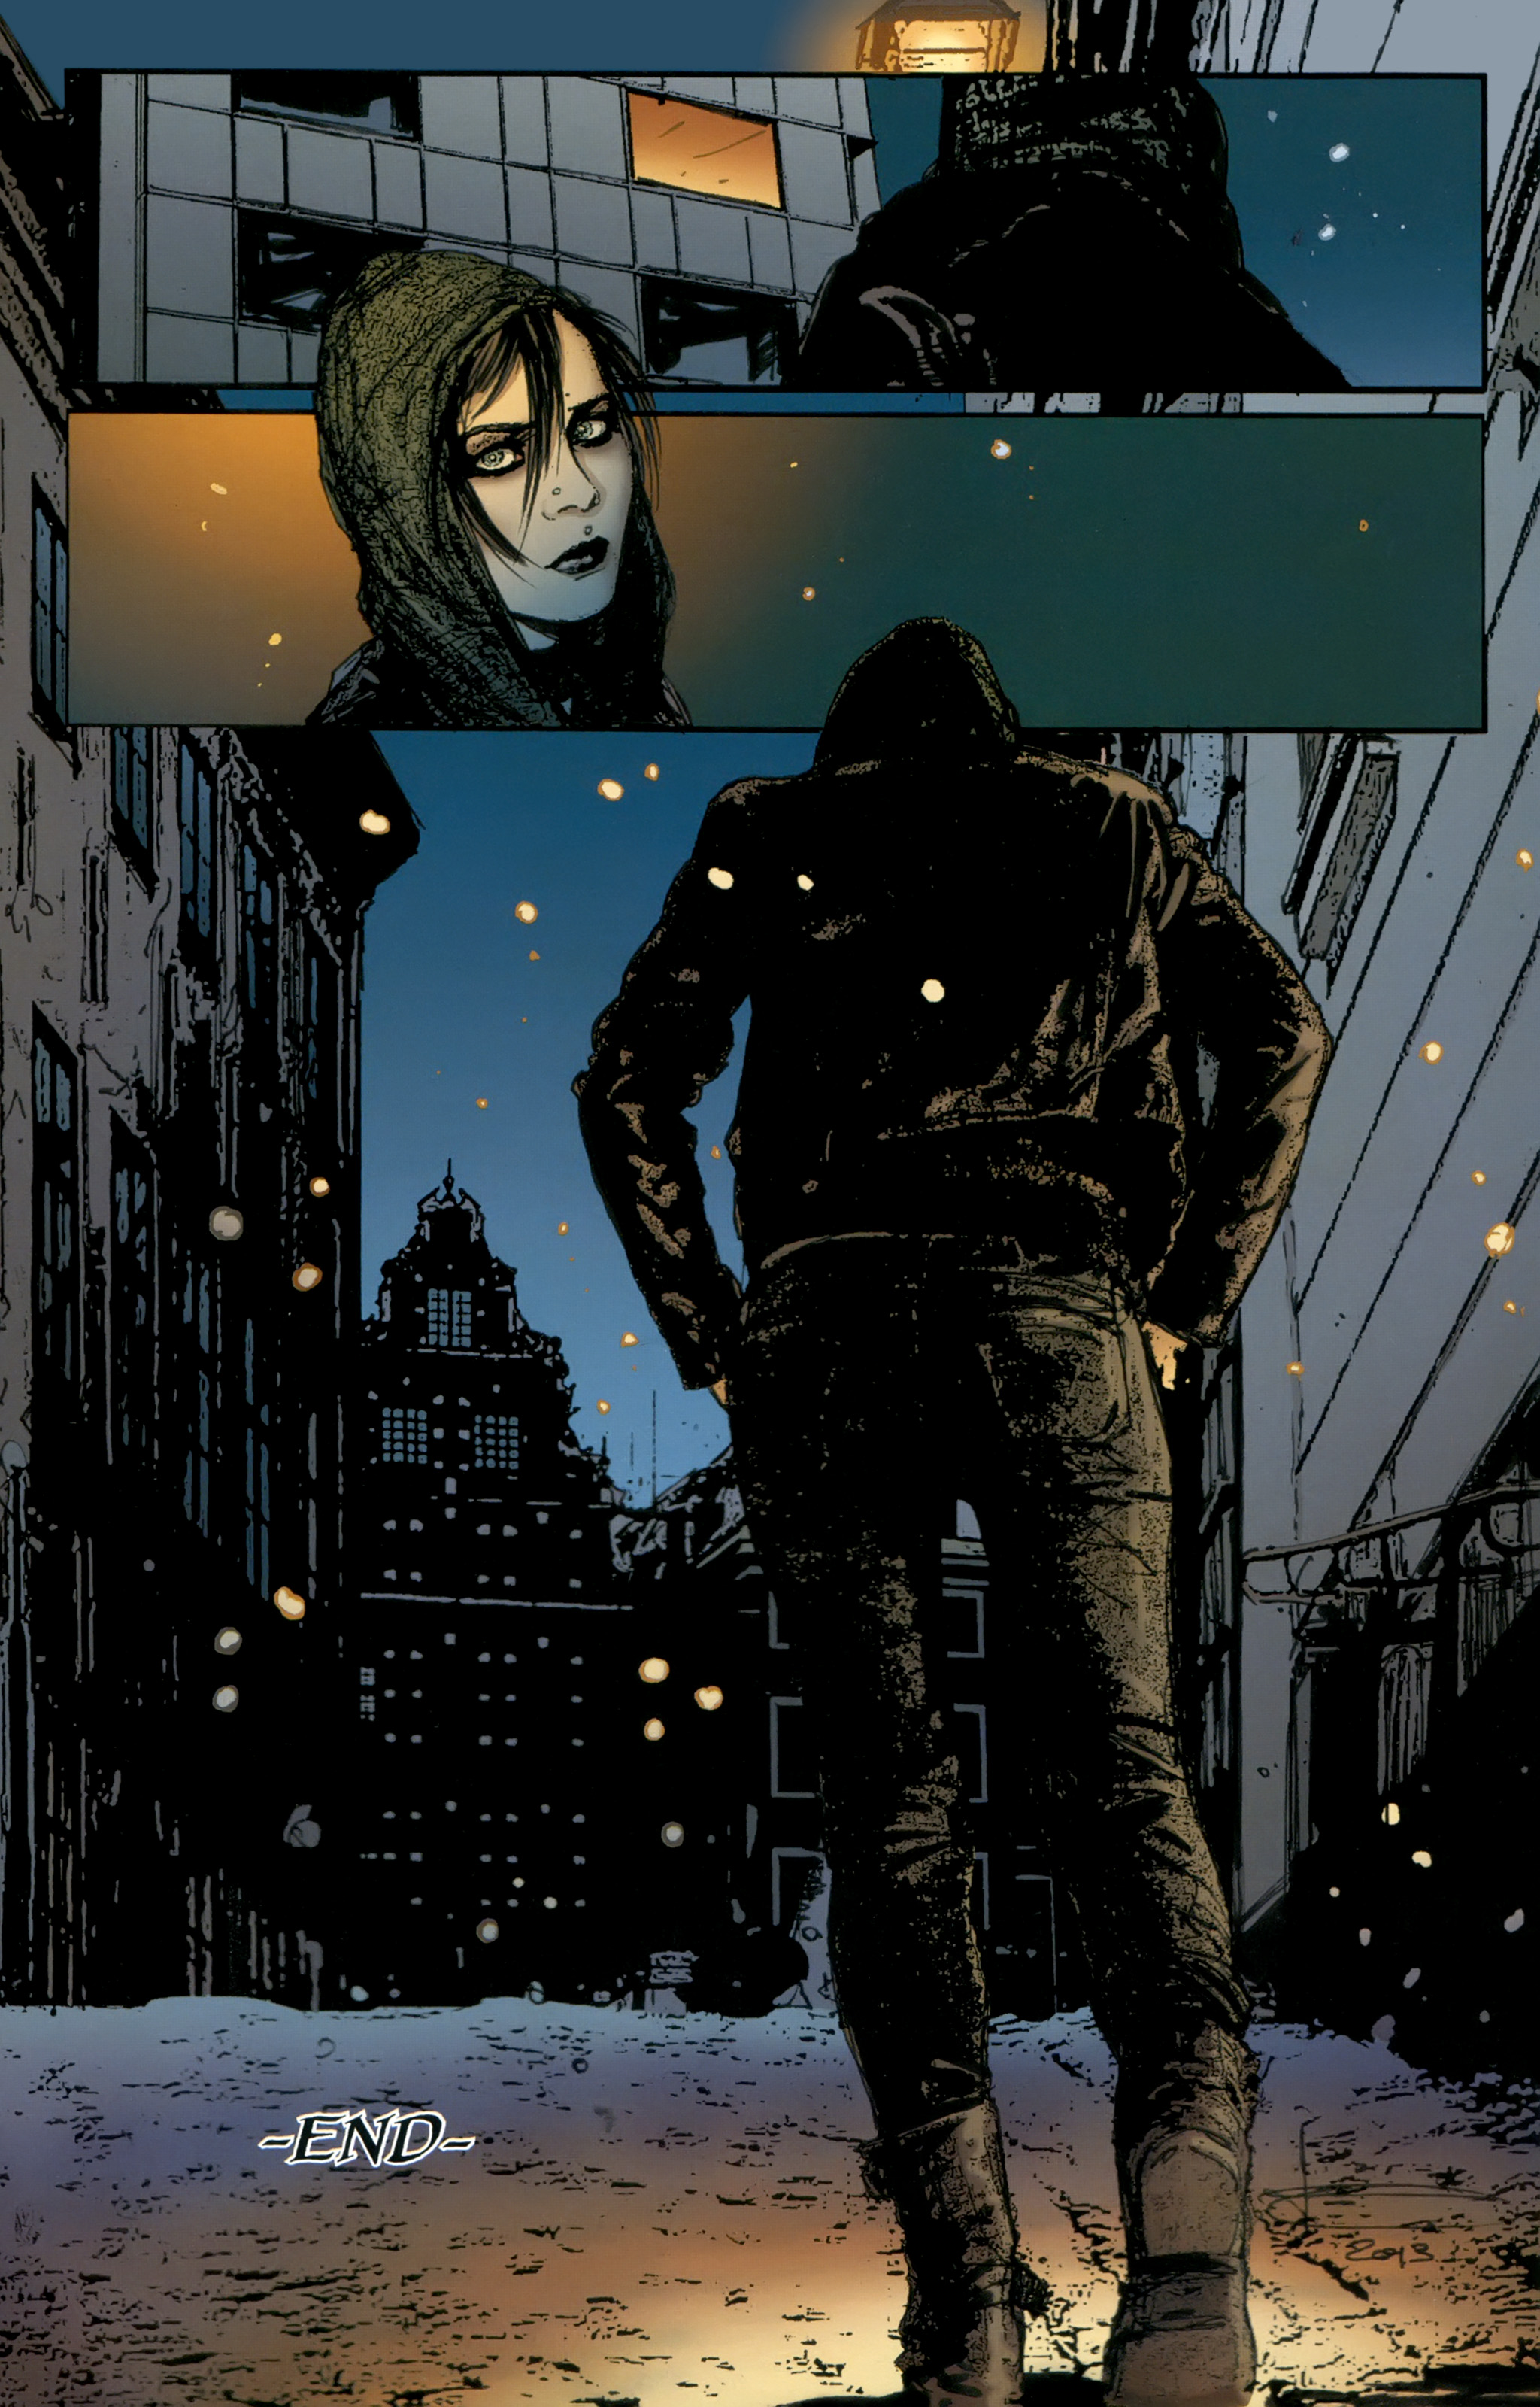 Read online The Girl With the Dragon Tattoo comic -  Issue # TPB 2 - 156